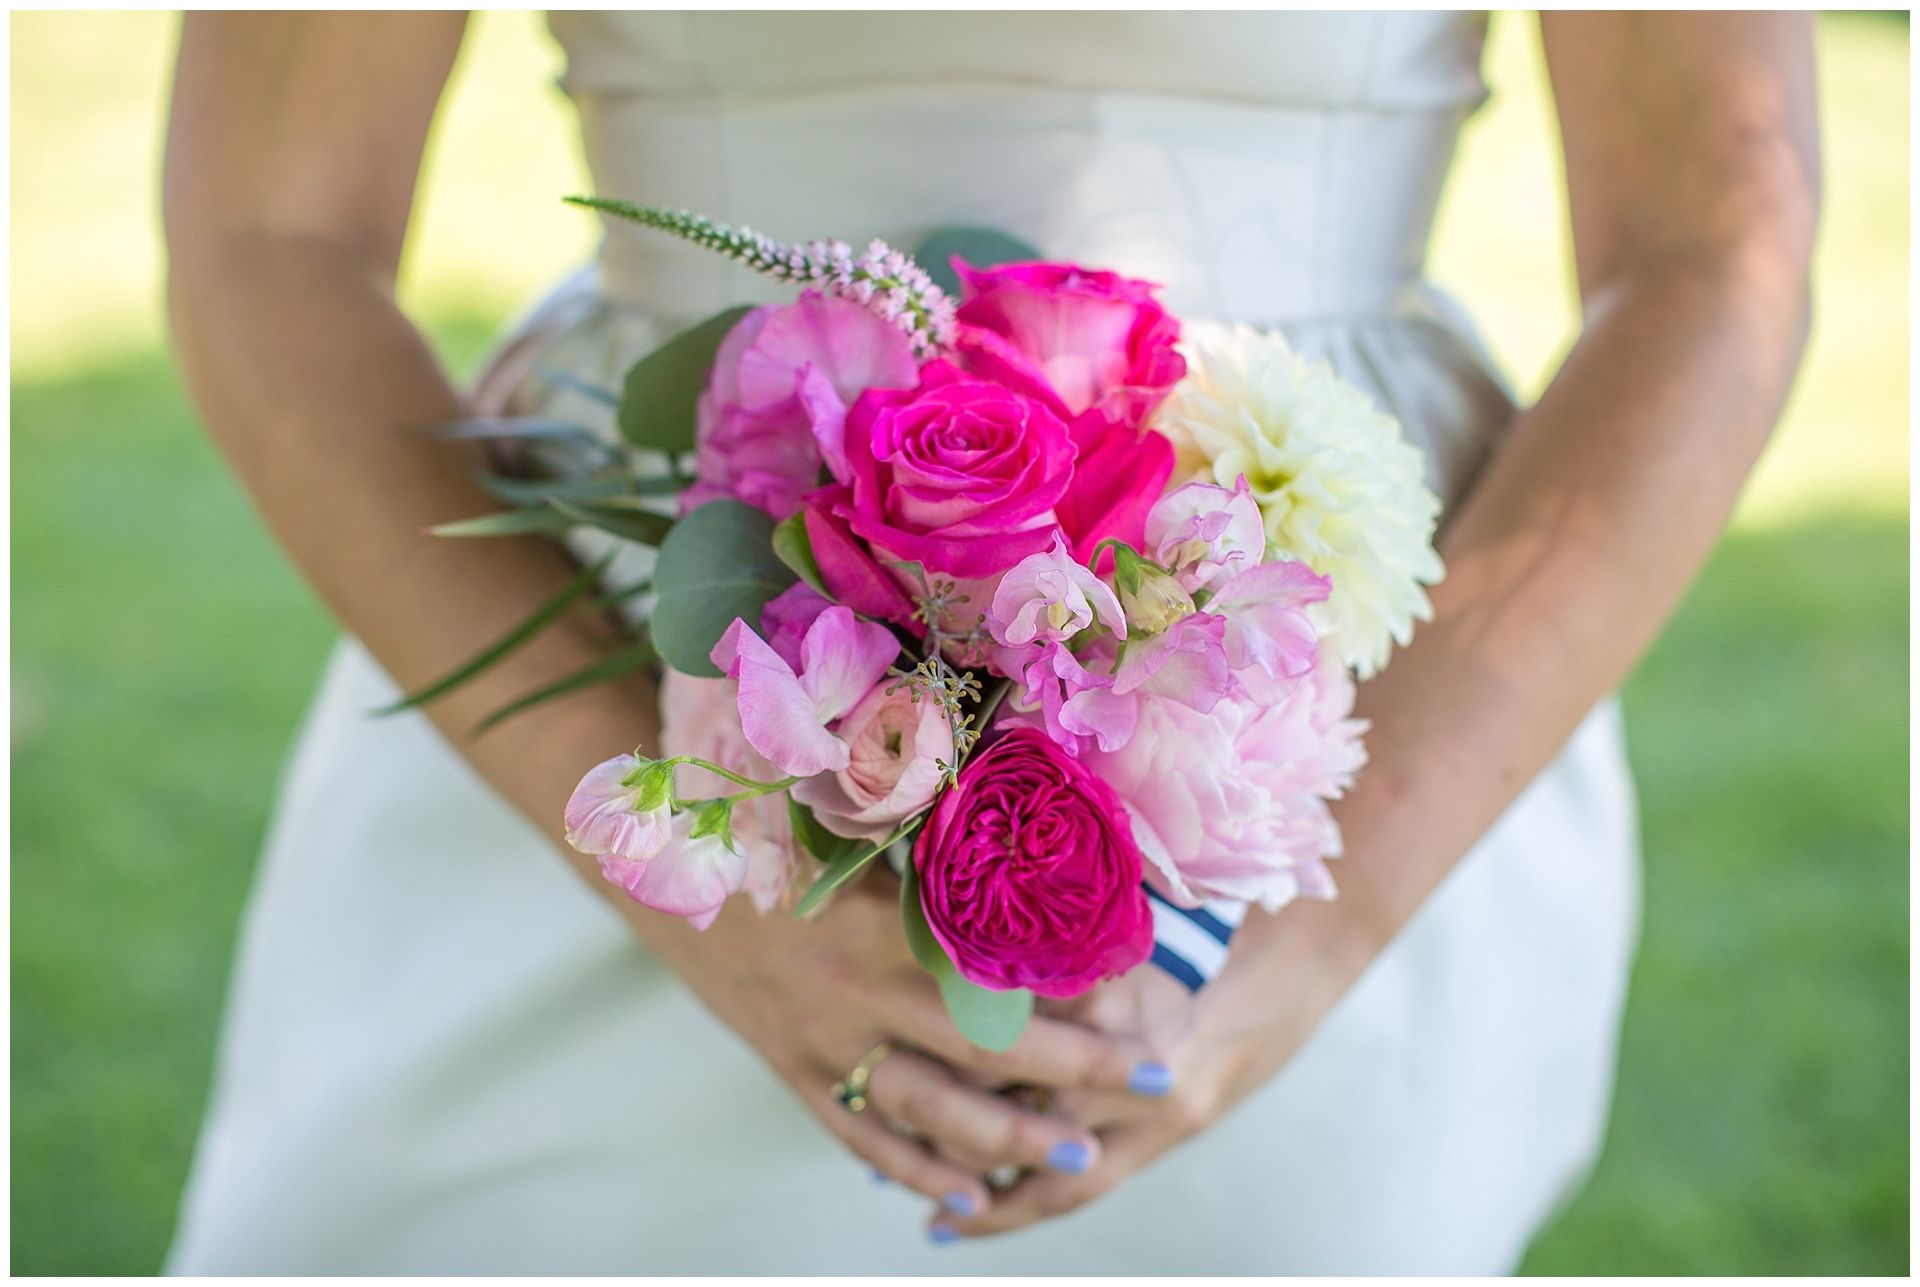 Bridesmaid Wedding Photography at Idle Hour Country Club & First ...